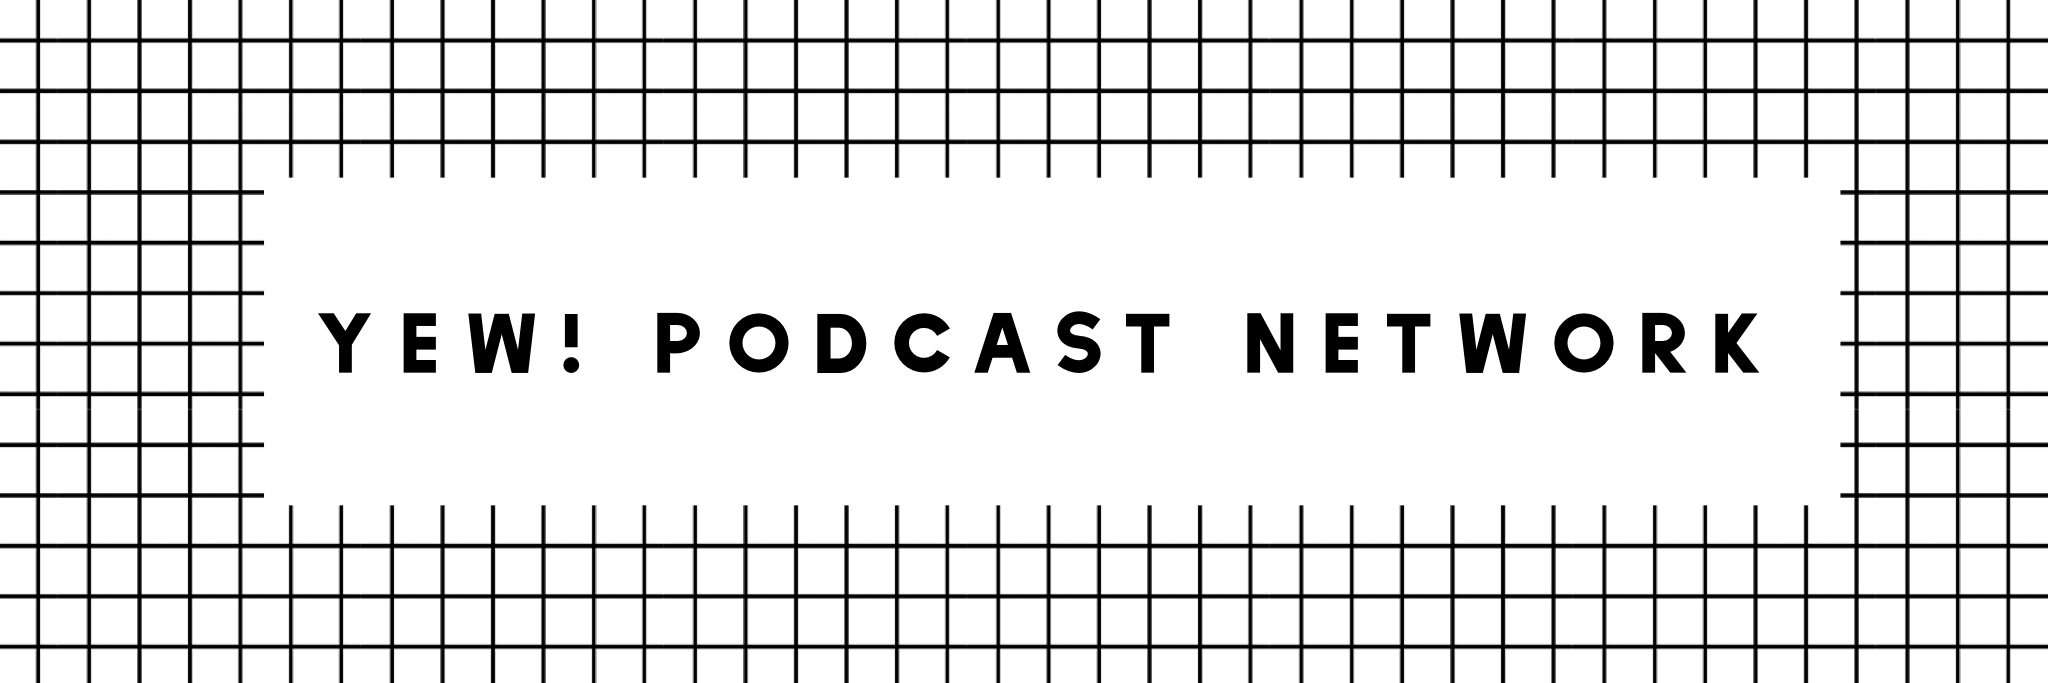 Yew Podcast network